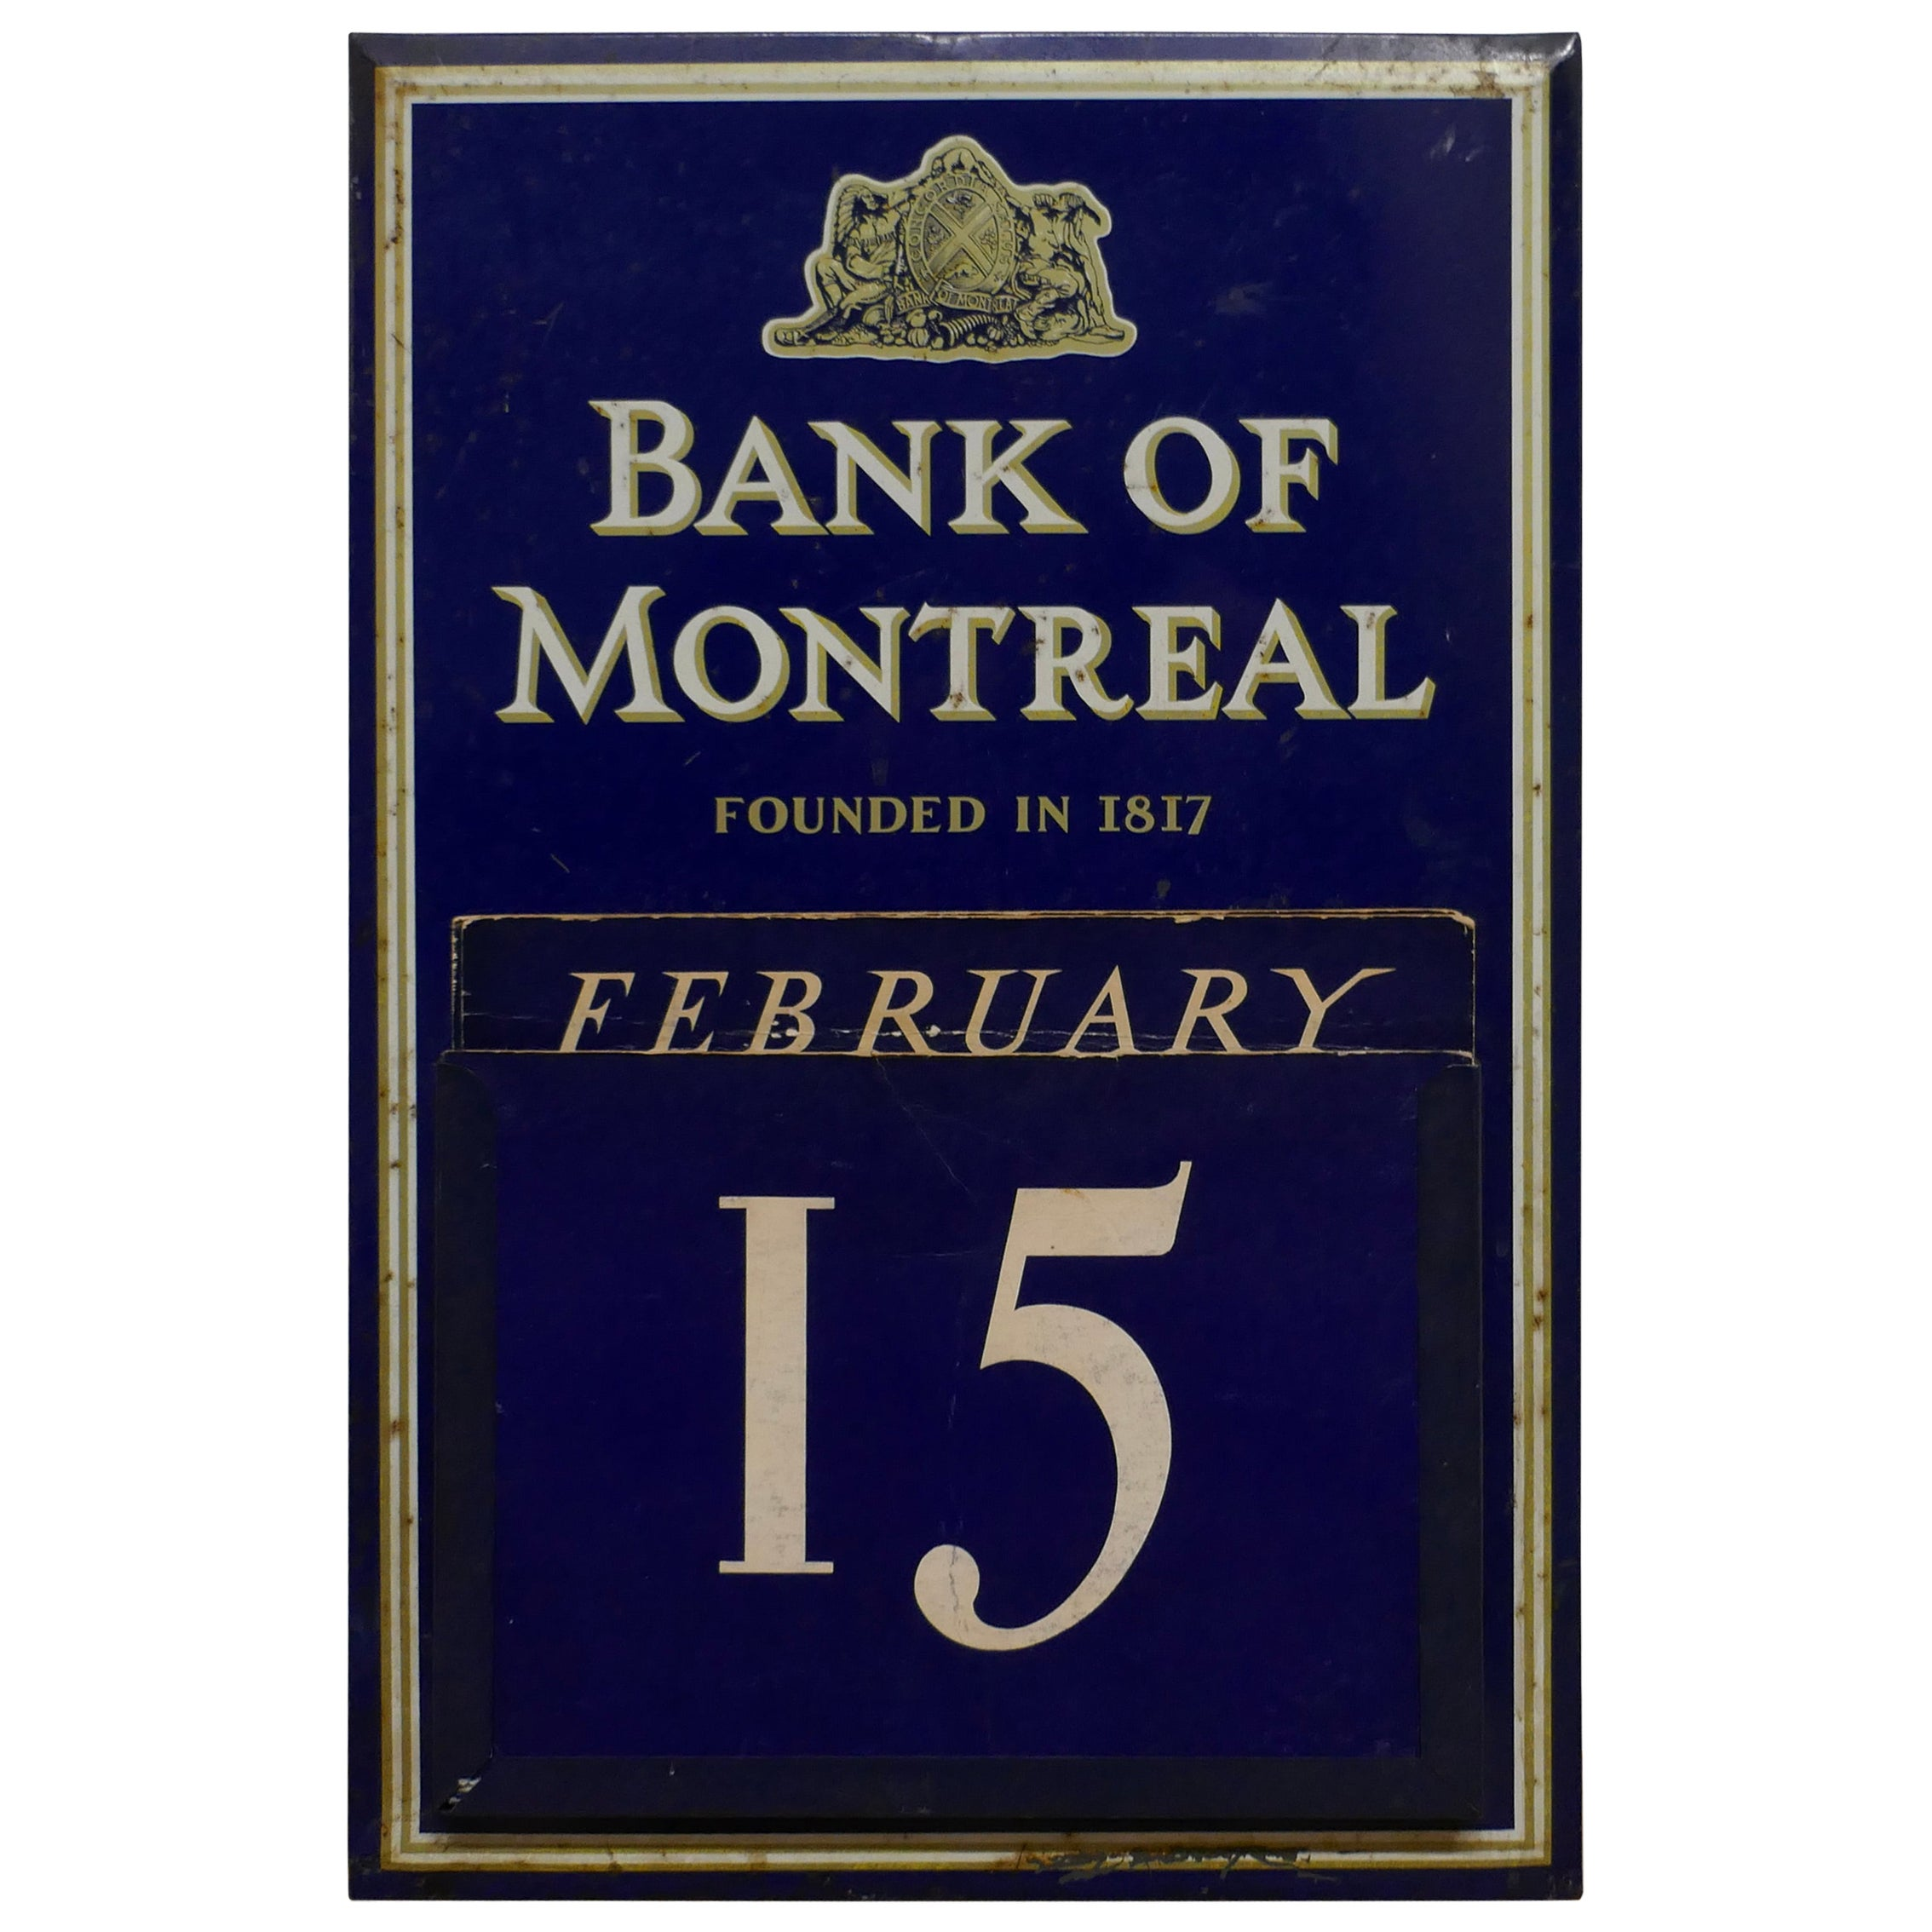 20th Century Tin Plate Perpetual Calendar from Bank of Montreal, 1817